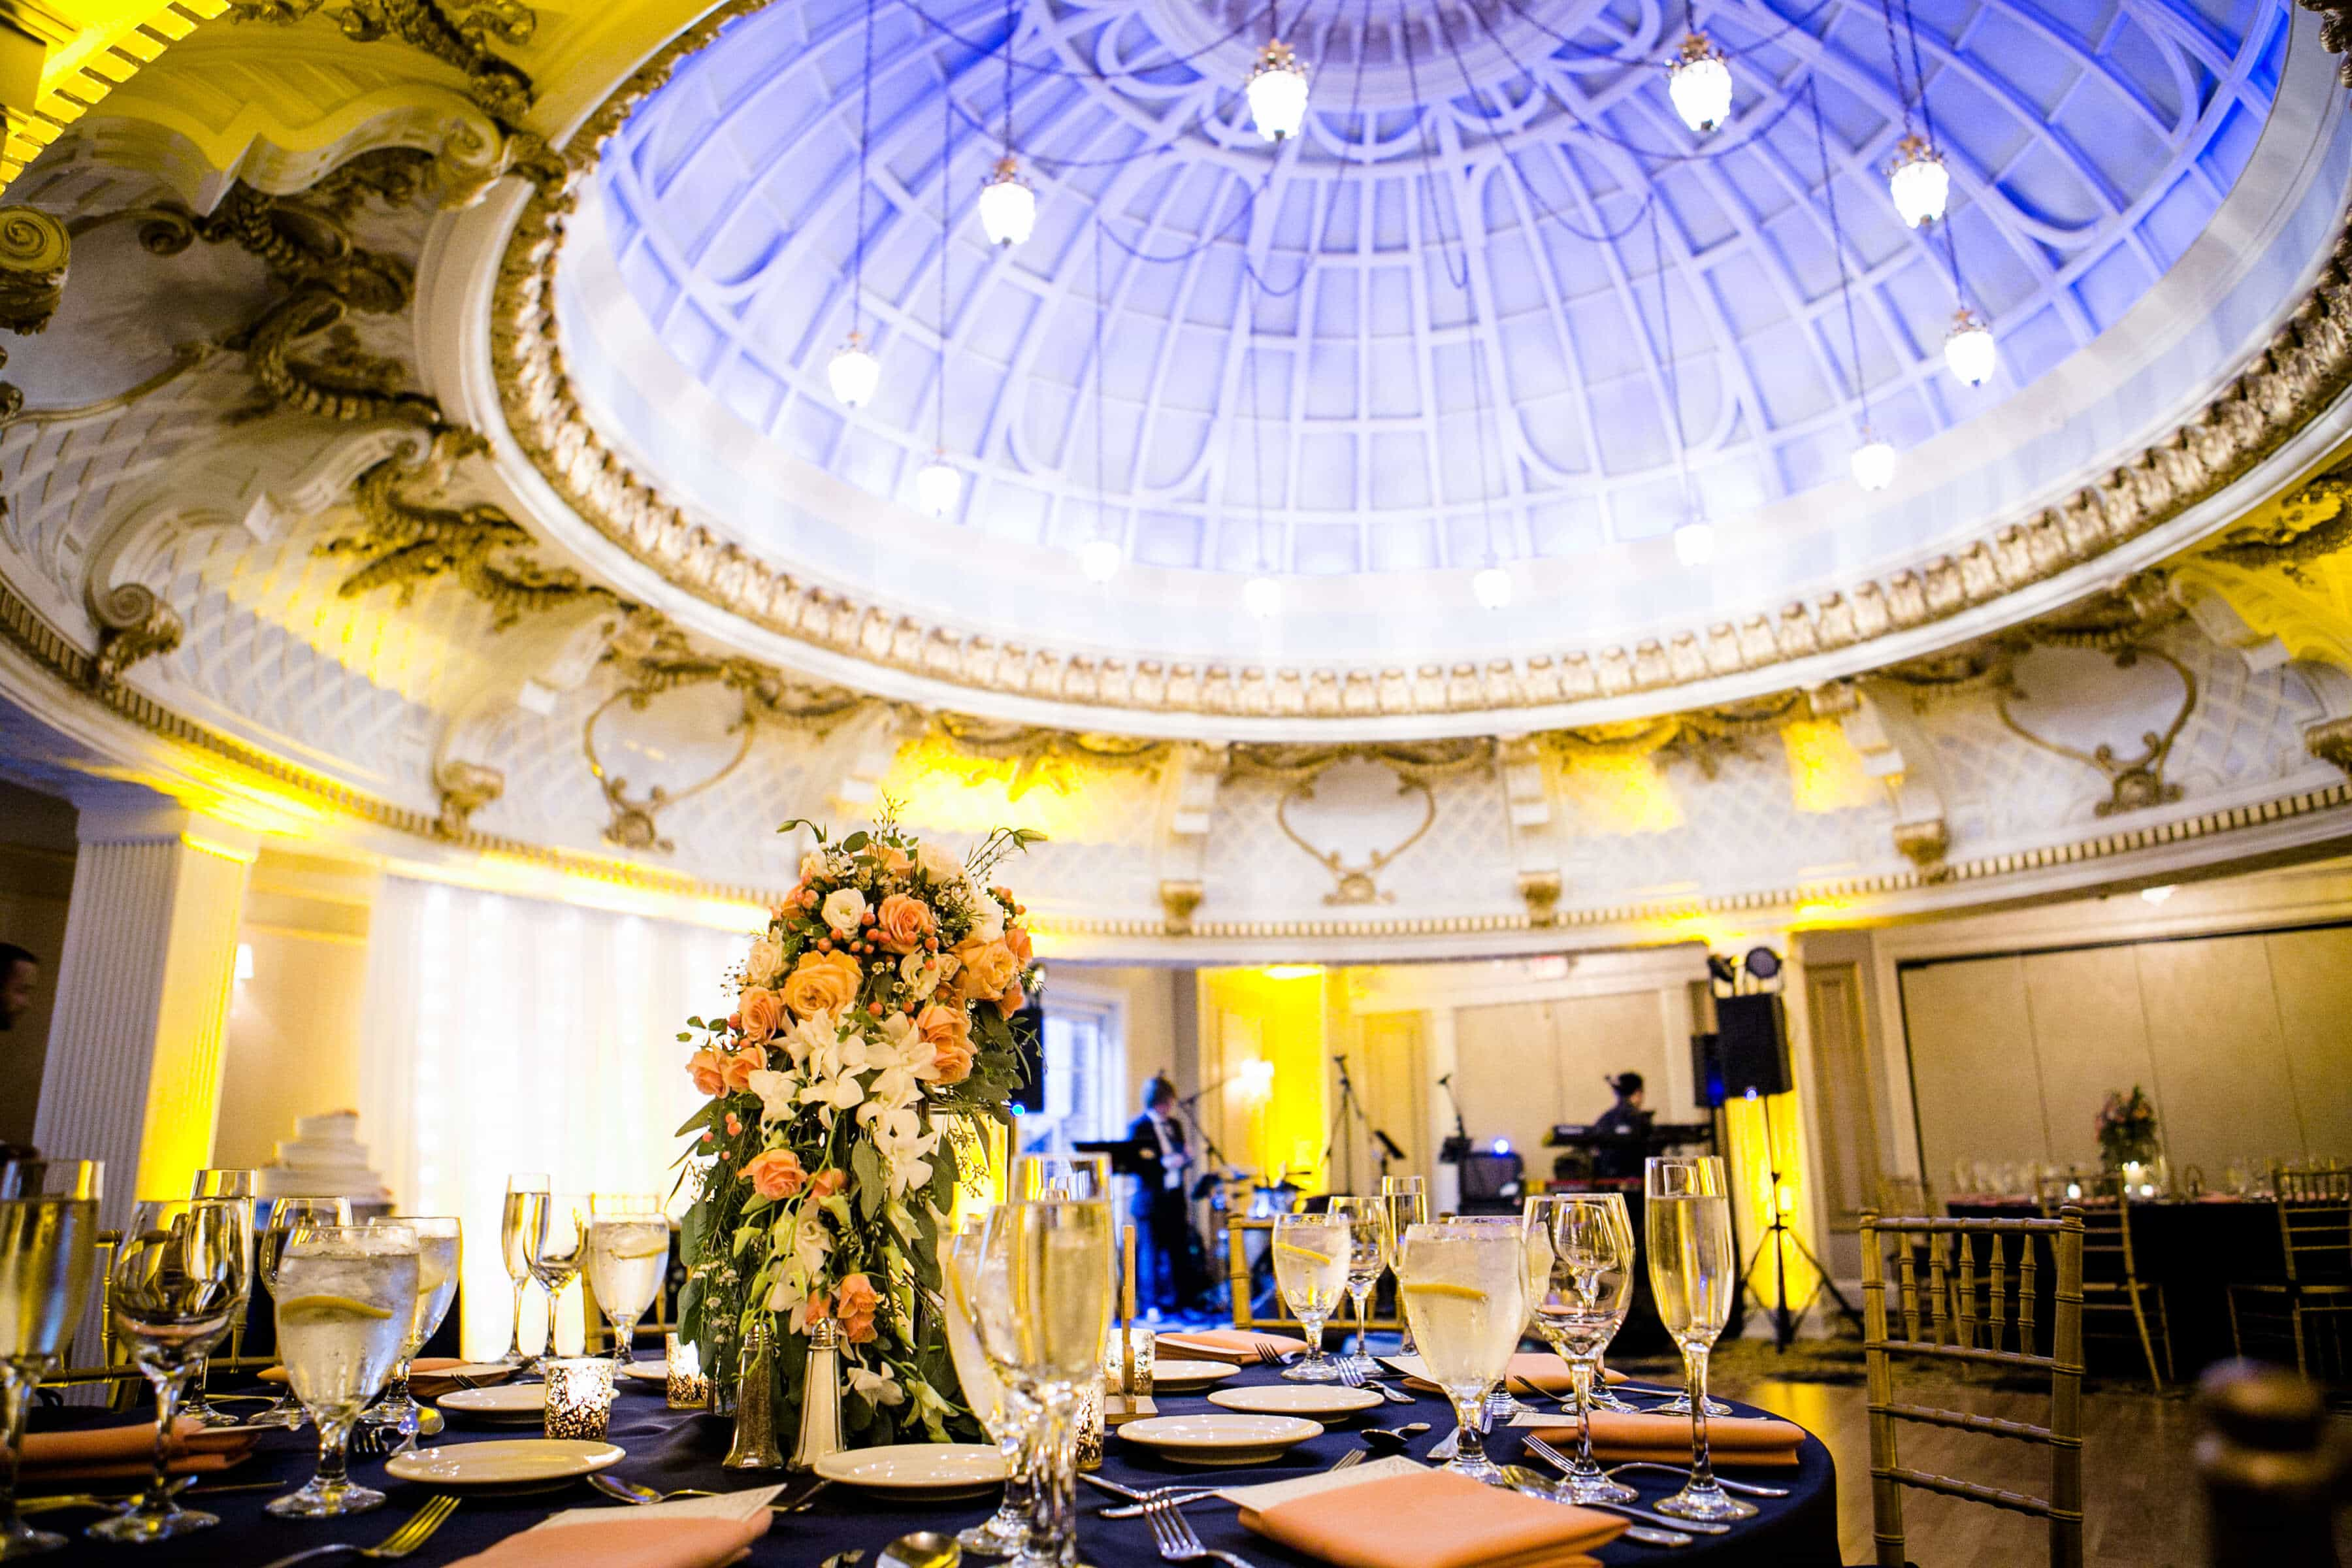 Lenox wedding venues in boston request info online for your wedding junglespirit Images